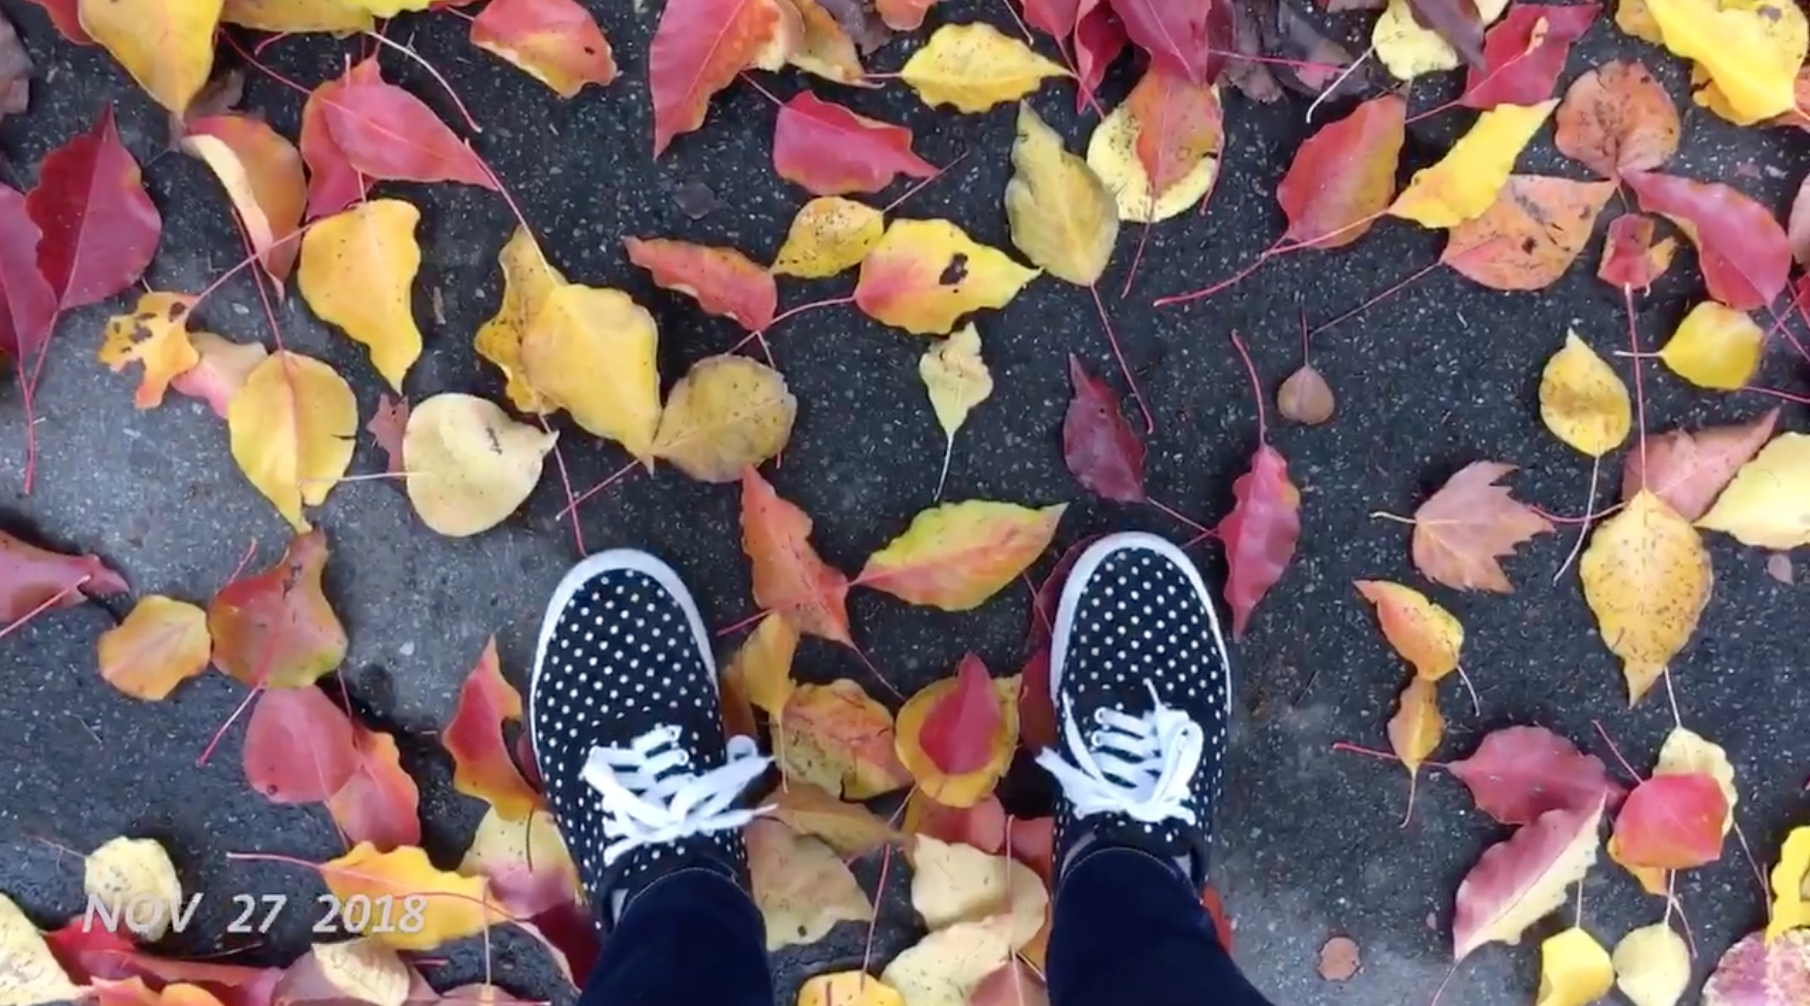 Screen Shot 2018-12-06 at 11.11.38 PM.png